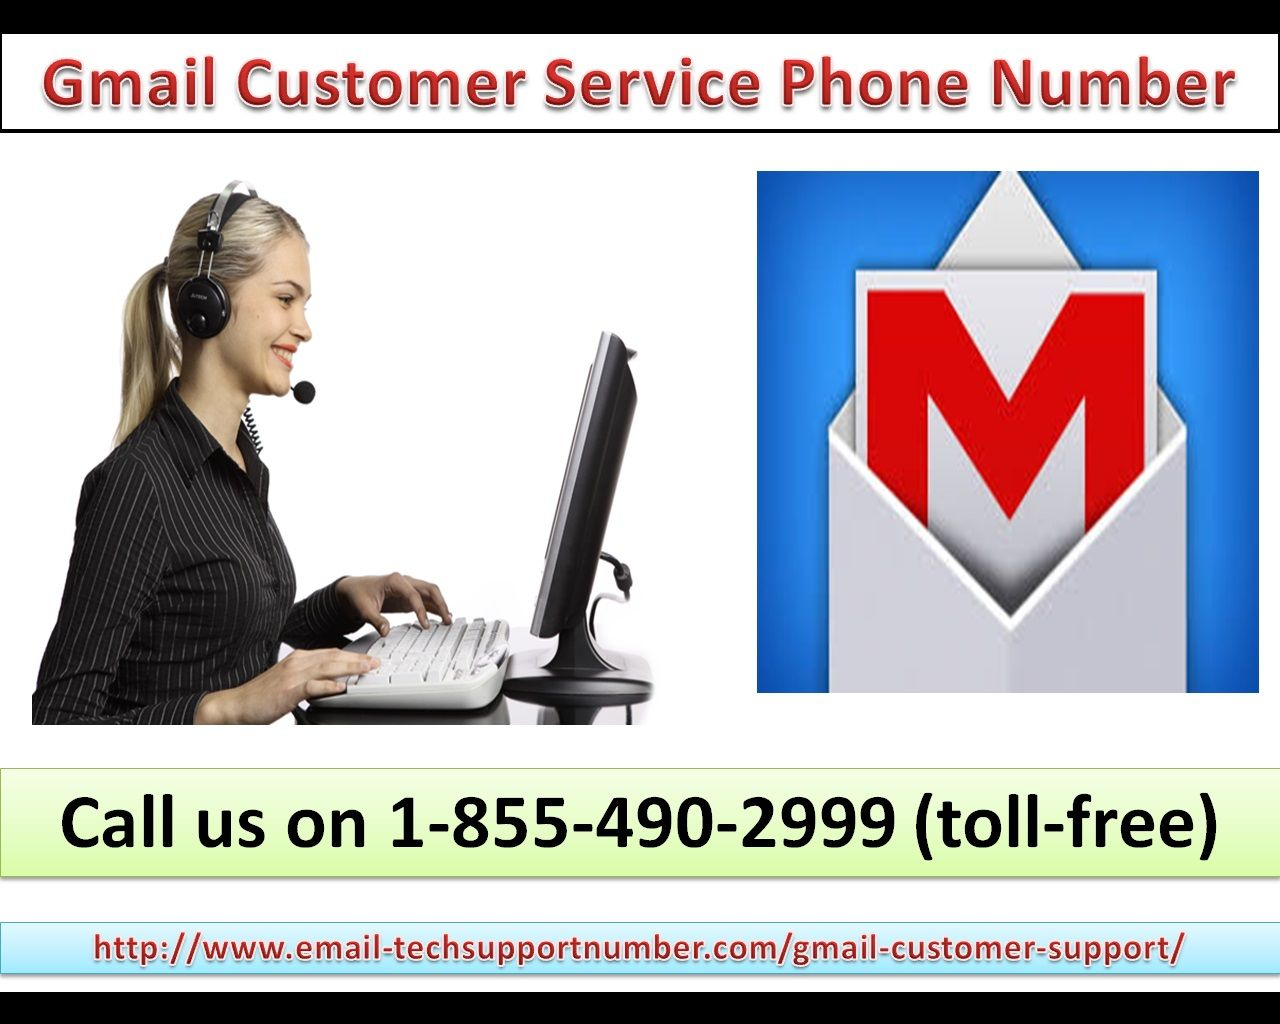 Ring On 18334457444 (tollfree) For Gmail Customer